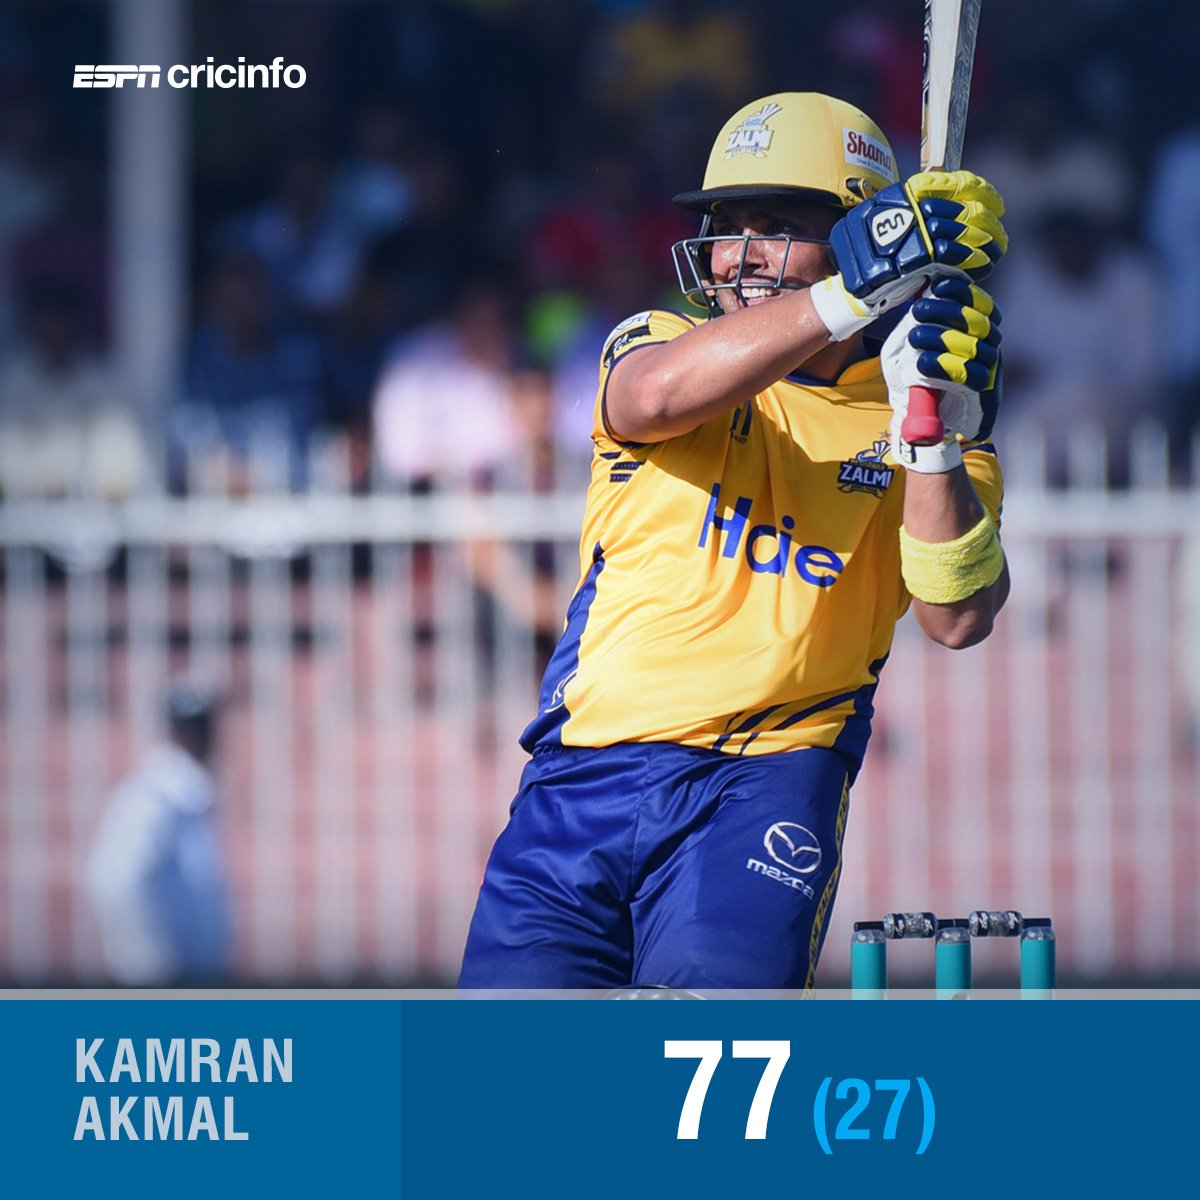 Add another to the list of Kamran Akmal's best hits in #PSL2018   https://t.co/hNm7VnCG7c #KKvPZ